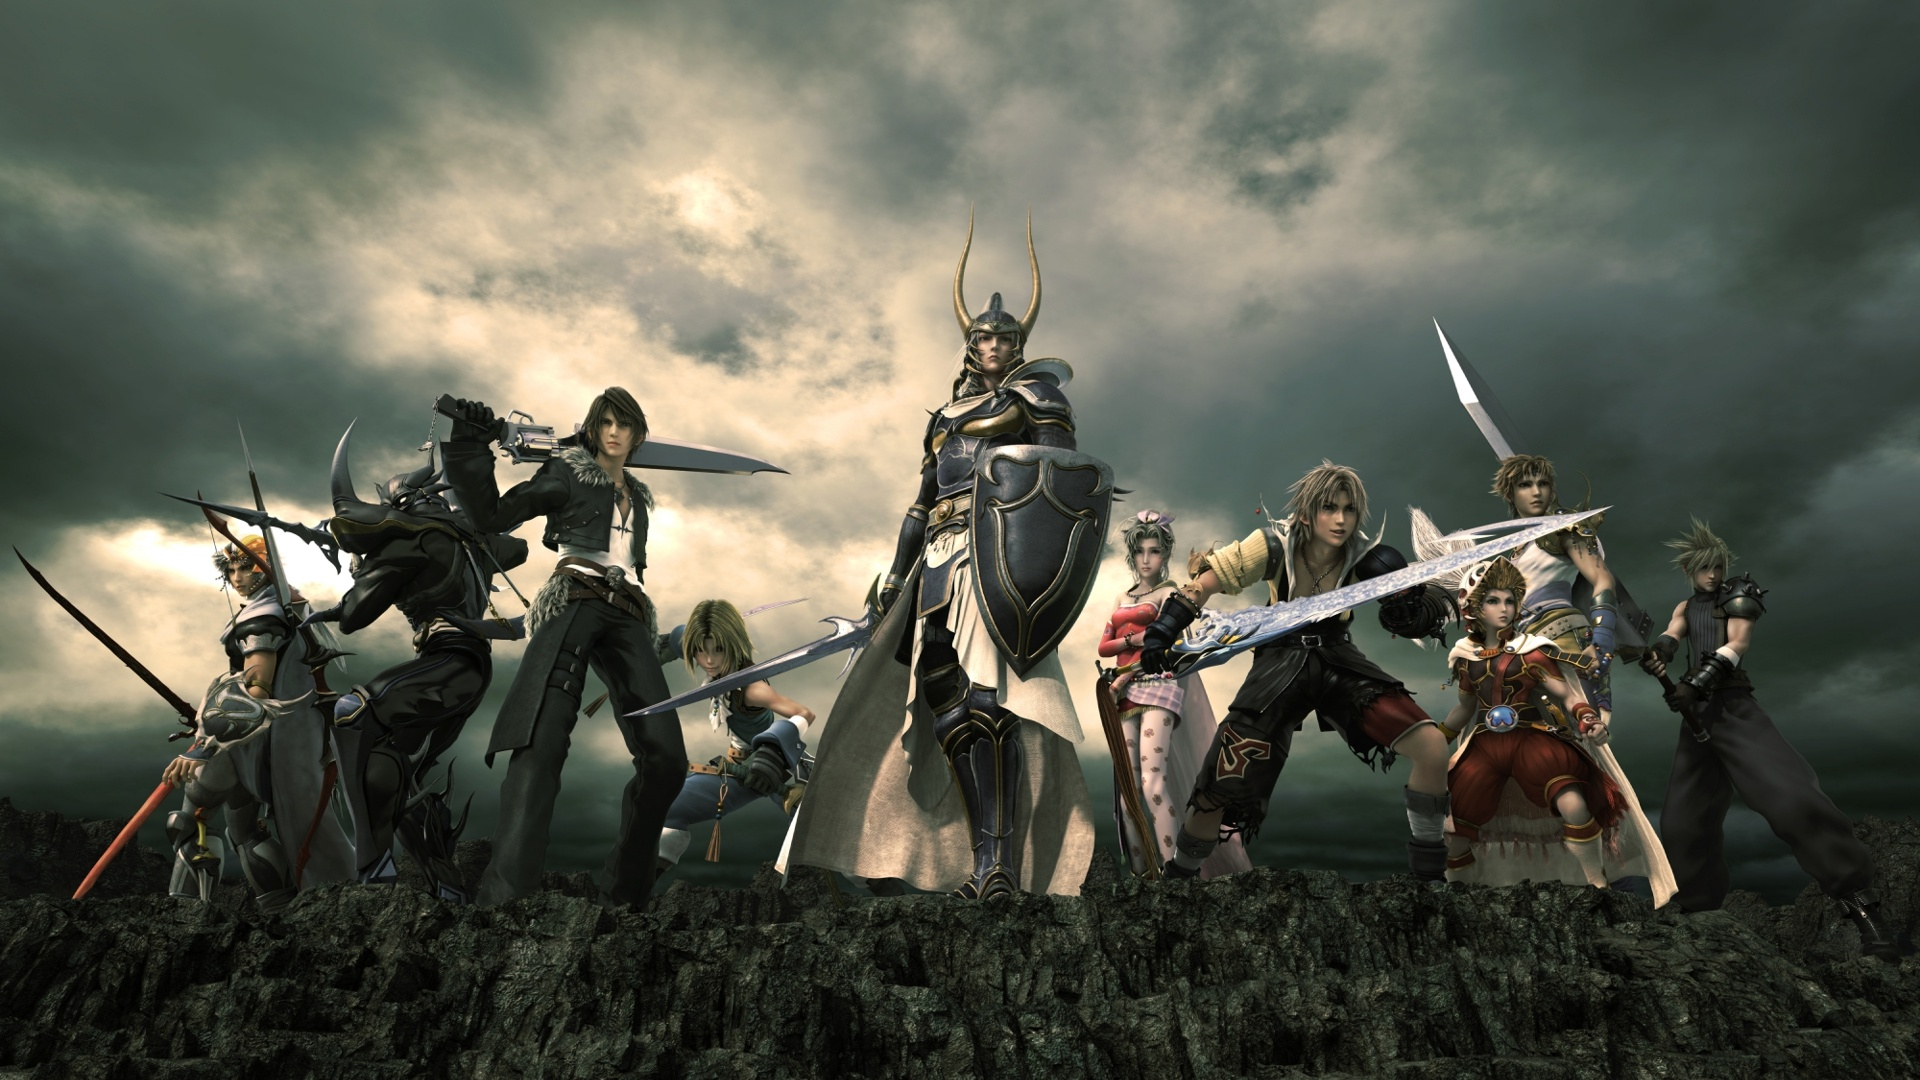 The Top 6 Best Main Final Fantasy Games Koalition